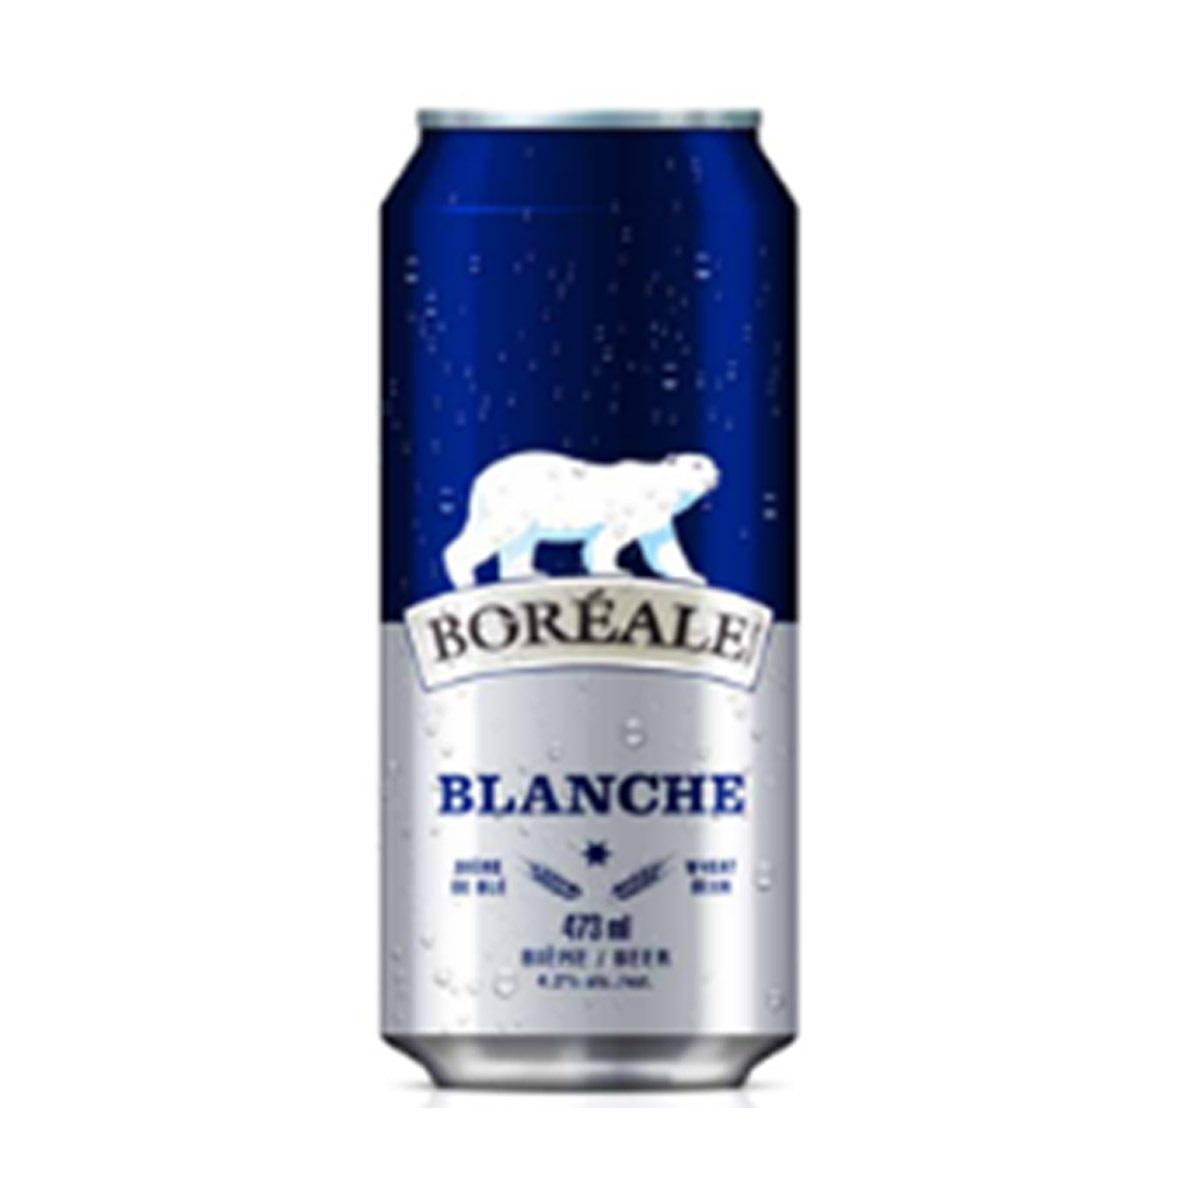 Bière Blanche 473 mL - canette*_*Beer Blanche  473 mL - can*_*Cerveza Blanche 473 mL - Lata